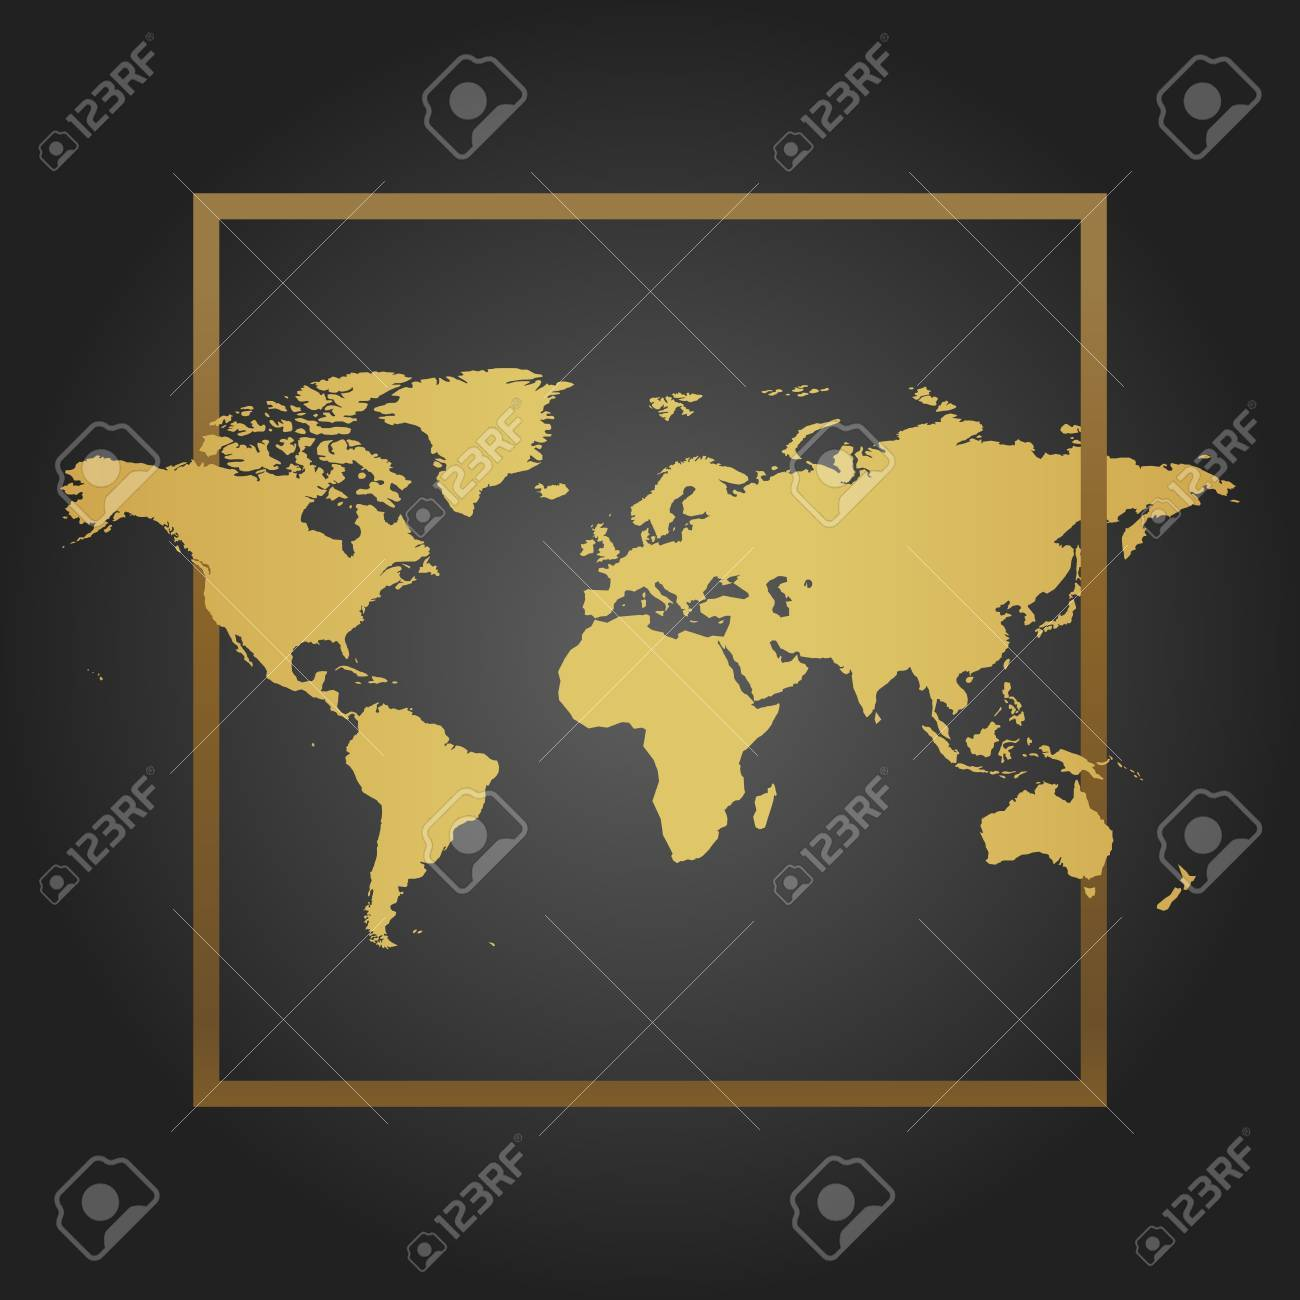 Golden political world map in black background with frame space golden political world map in black background with frame space for text and quotes gumiabroncs Images